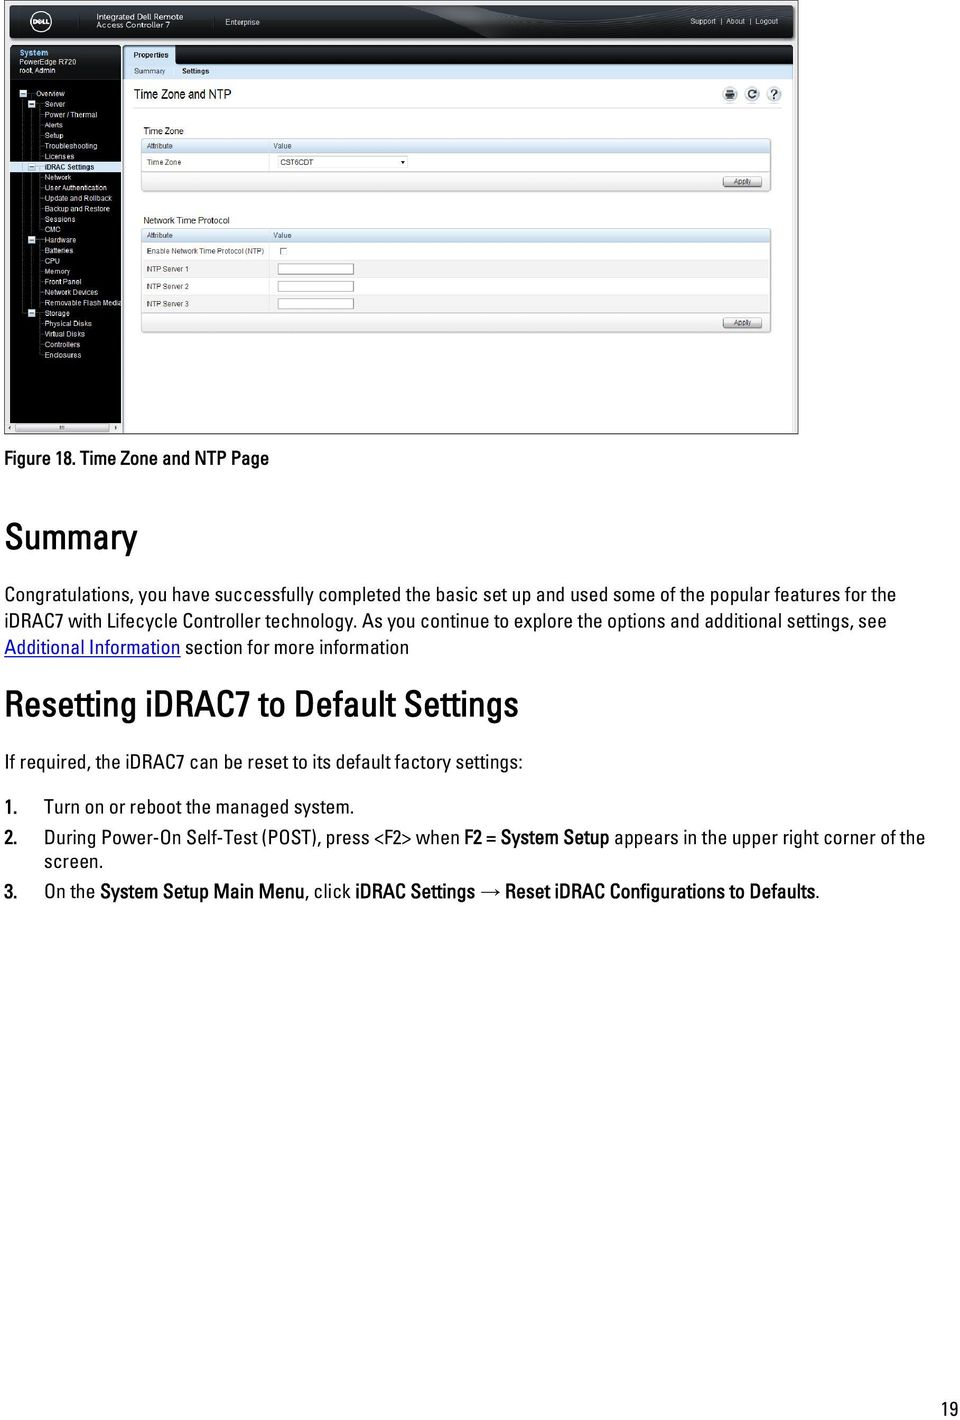 idrac7 Version With Lifecycle Controller 2 Version 1 1 Quick